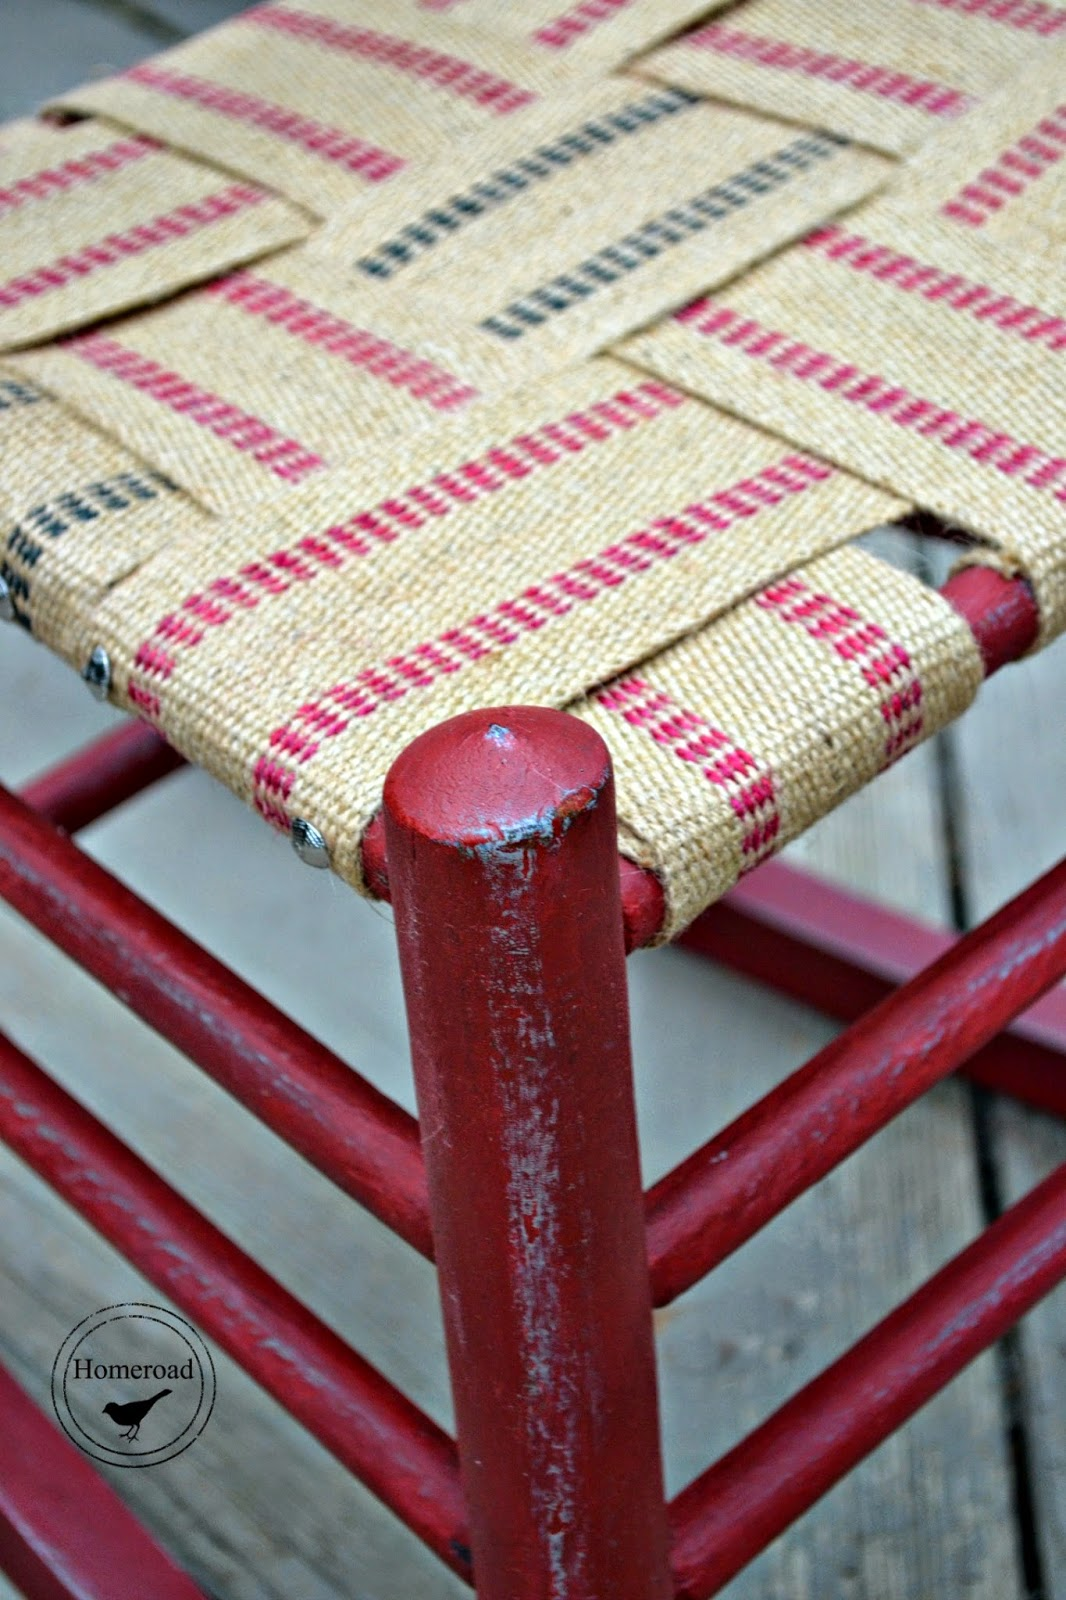 antique rocker with an upholstery webbing seat www.homeroad.net